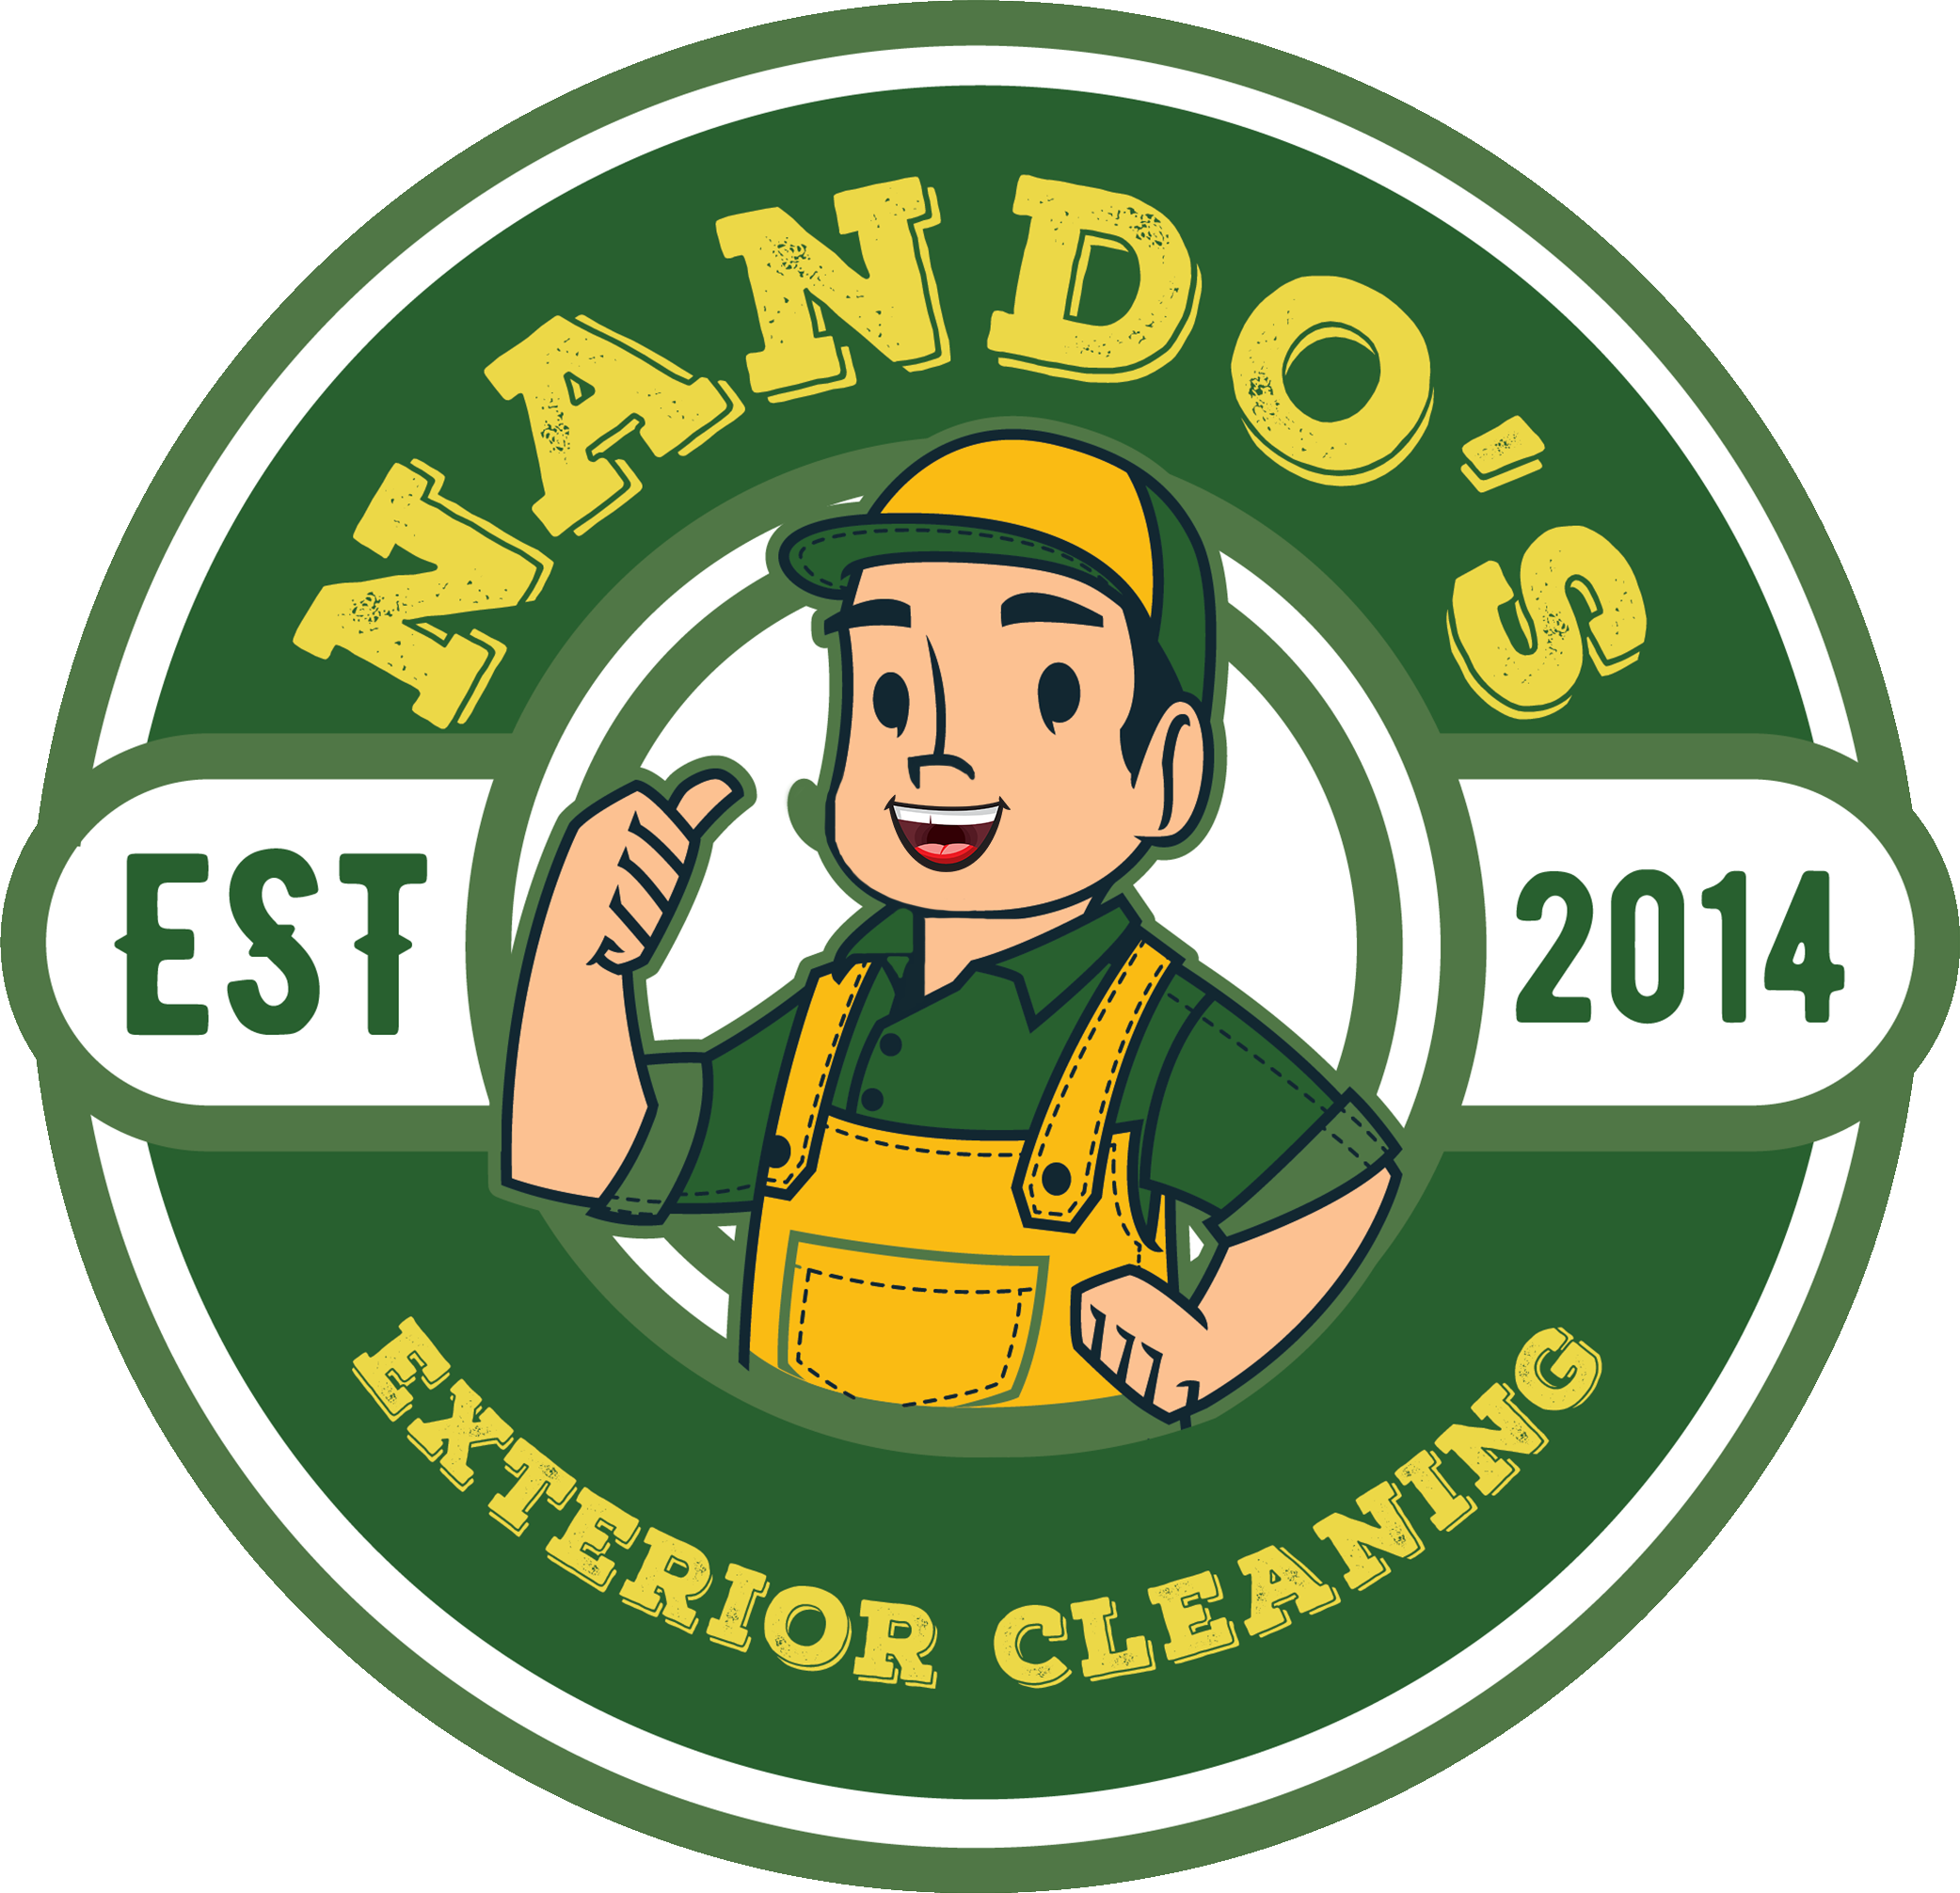 Nandos Logo Transparent